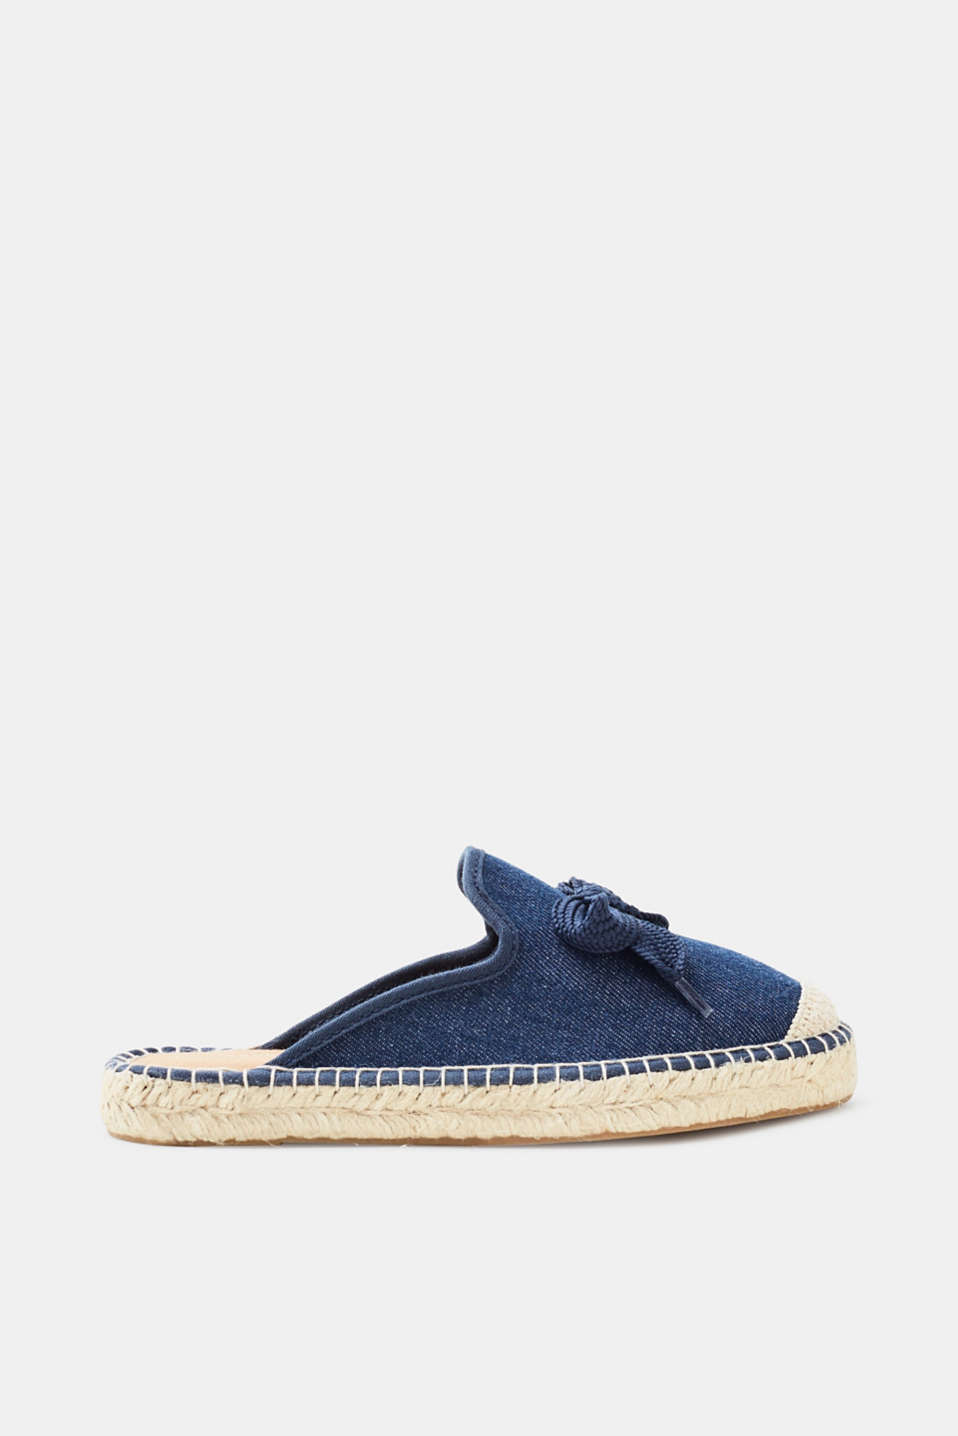 Esprit Espadrilles-Slipper in glatter Leder-Optik für Damen, Größe 36, Blue